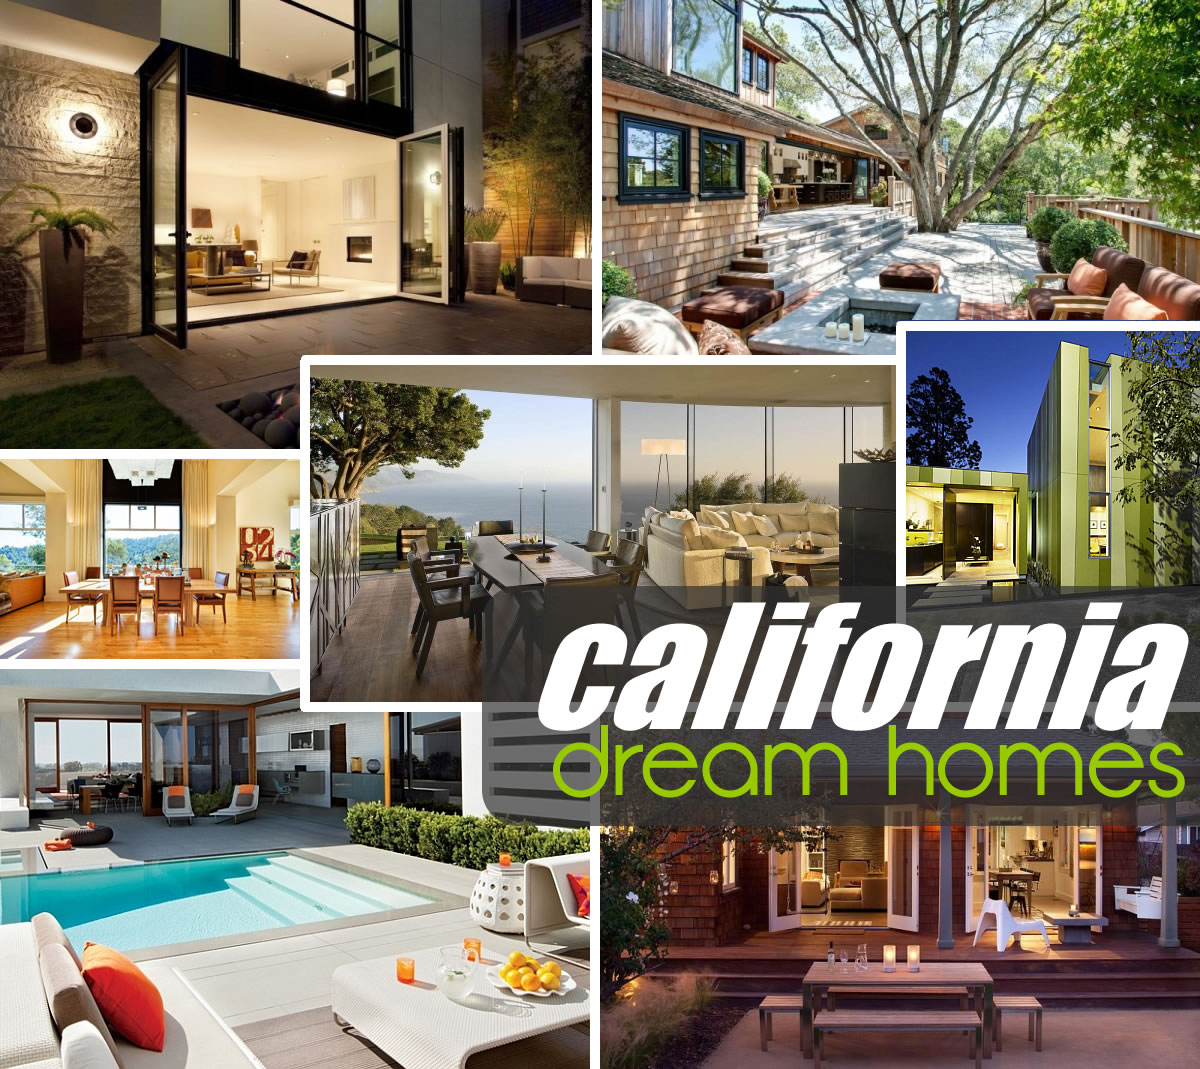 Innenarchitektur Verden California Dream Homes